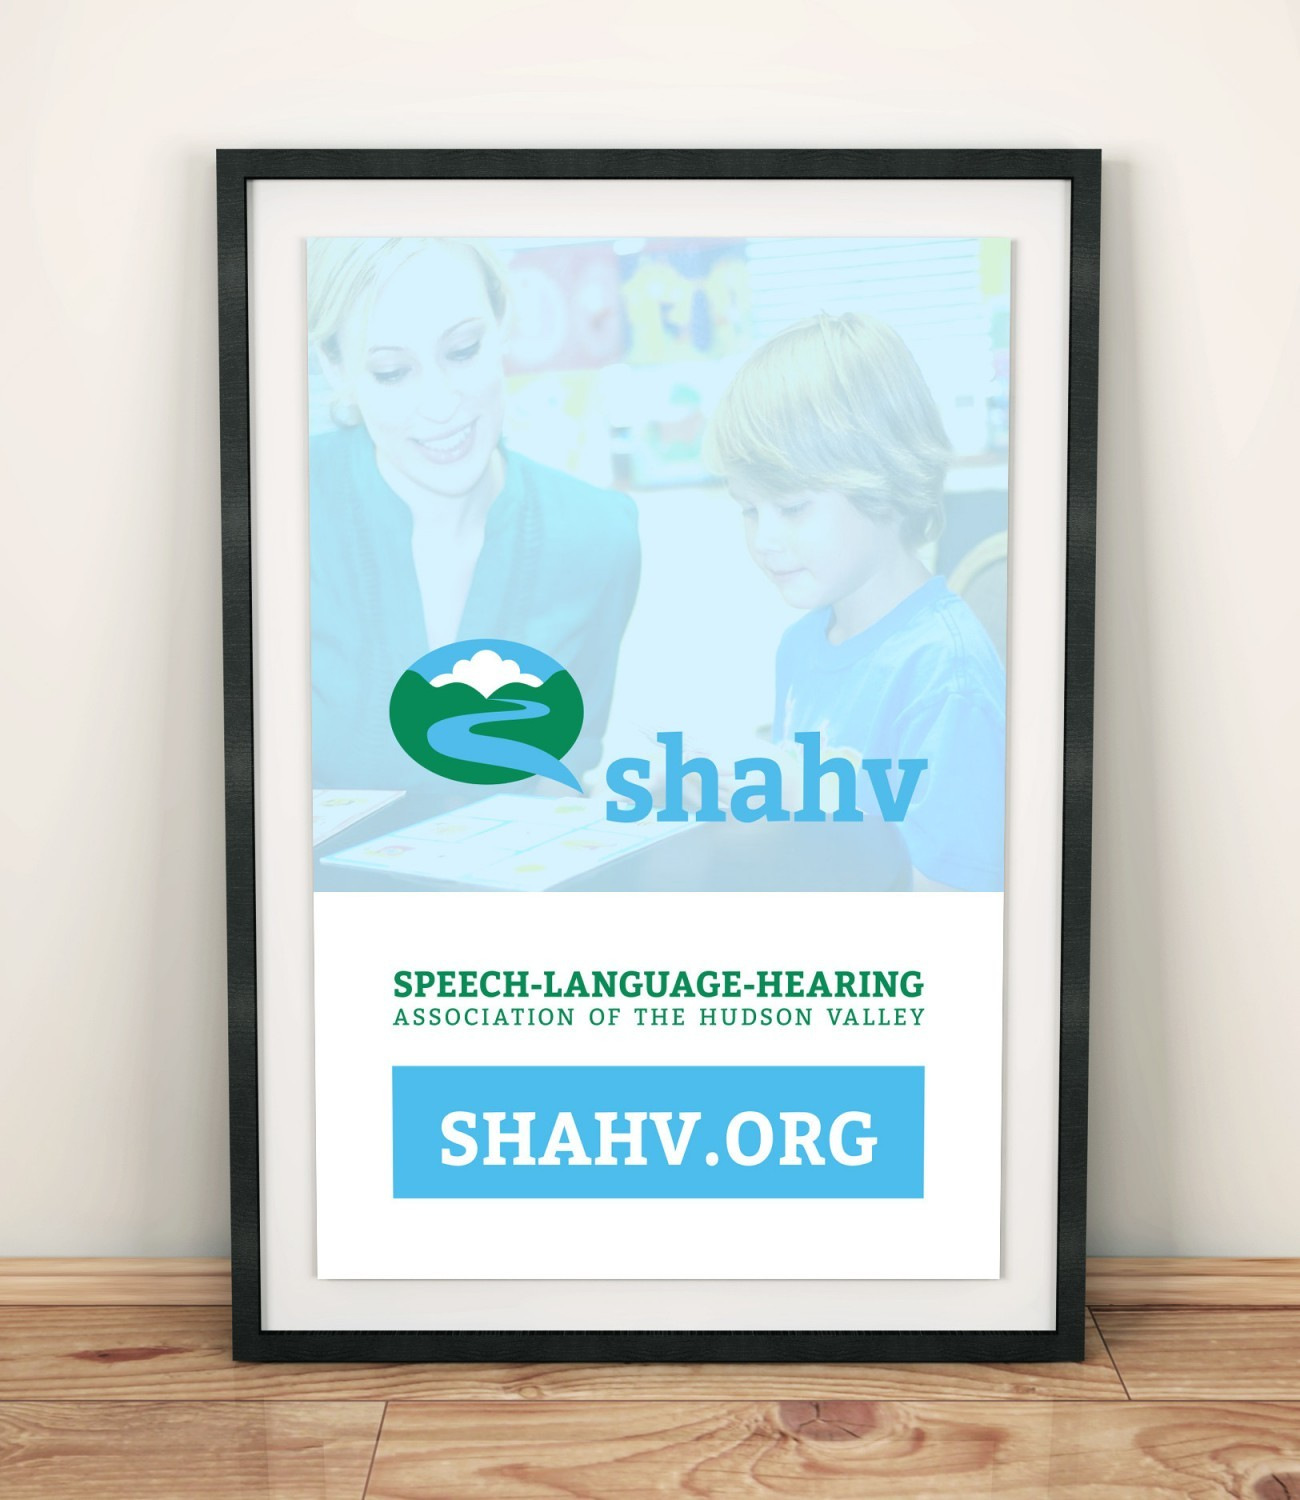 SHAHV Poster, designed by Query Creative in the Hudson Valley